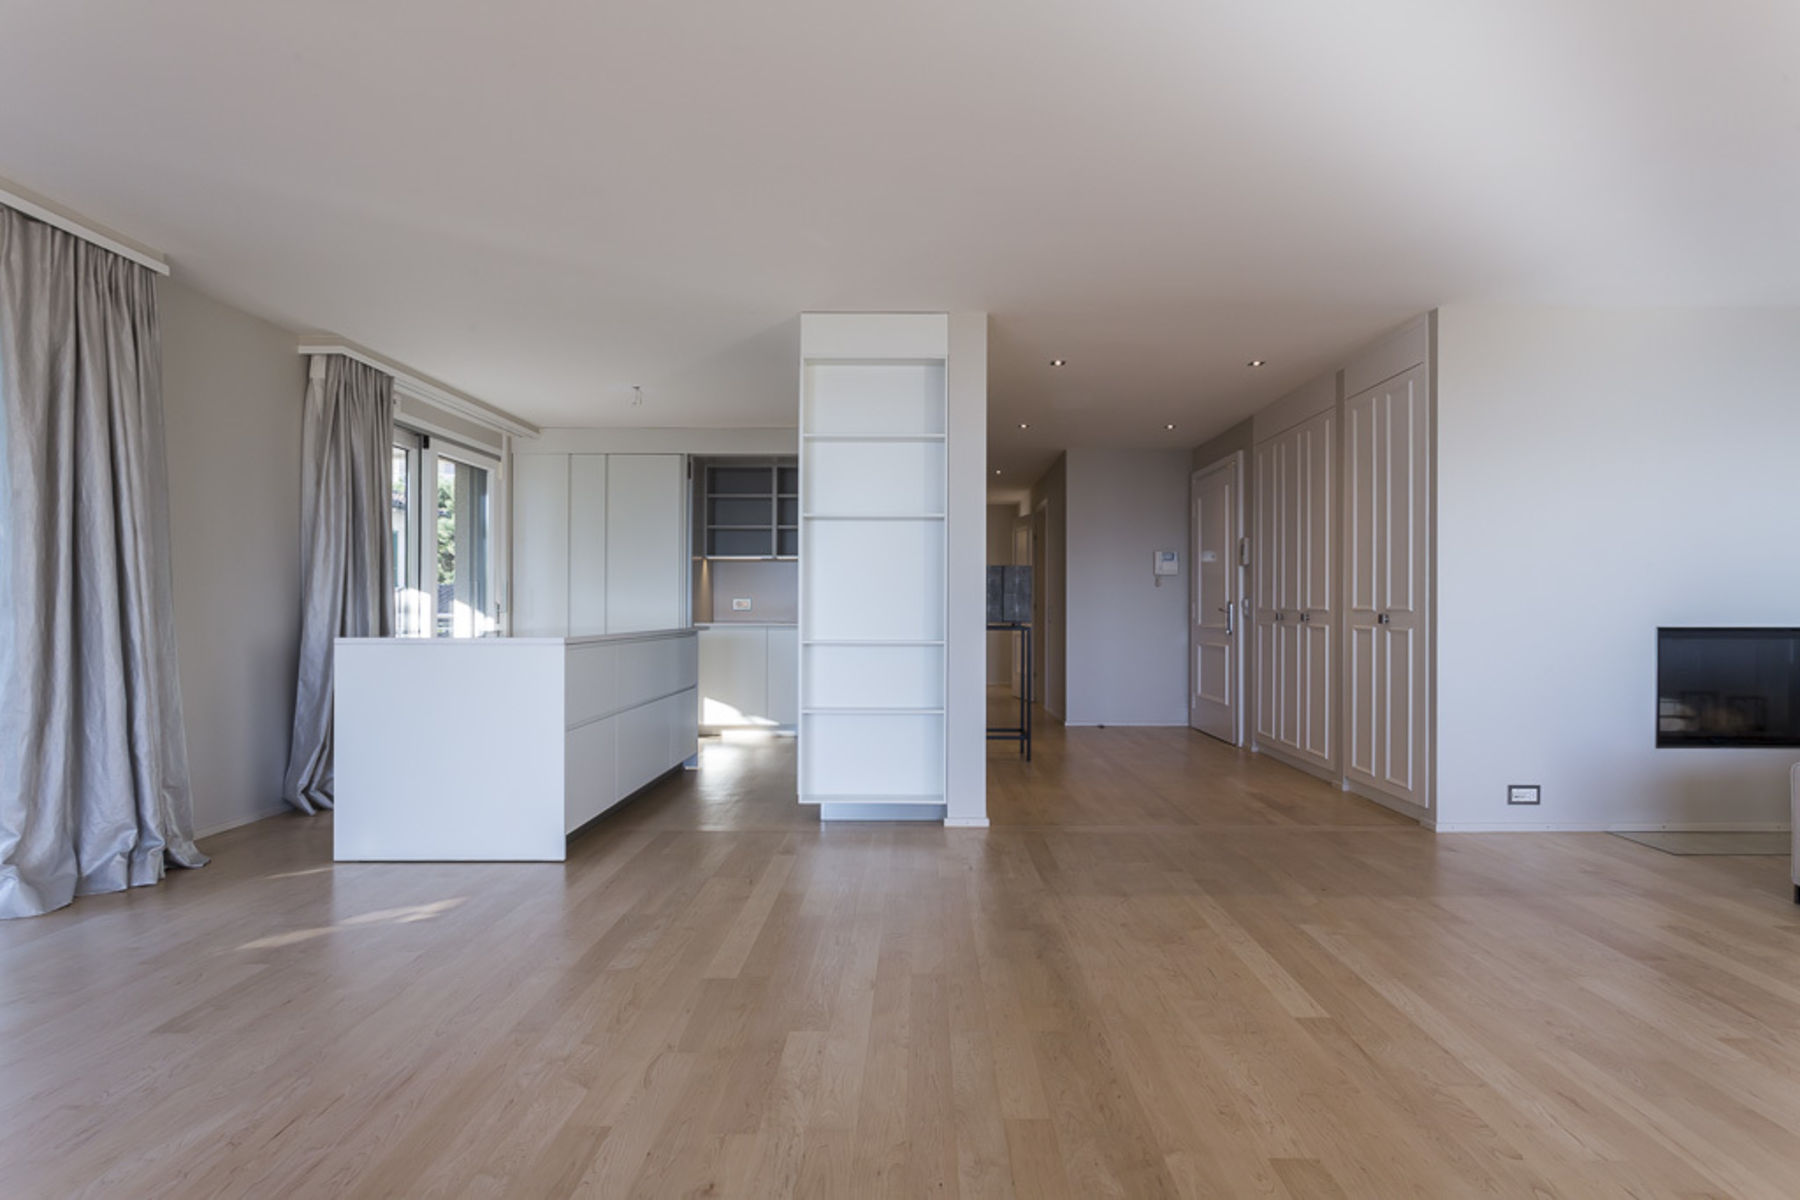 Additional photo for property listing at Modern 4 room apartment, overlooking the lake Pully Pully, Vaud 1009 Switzerland